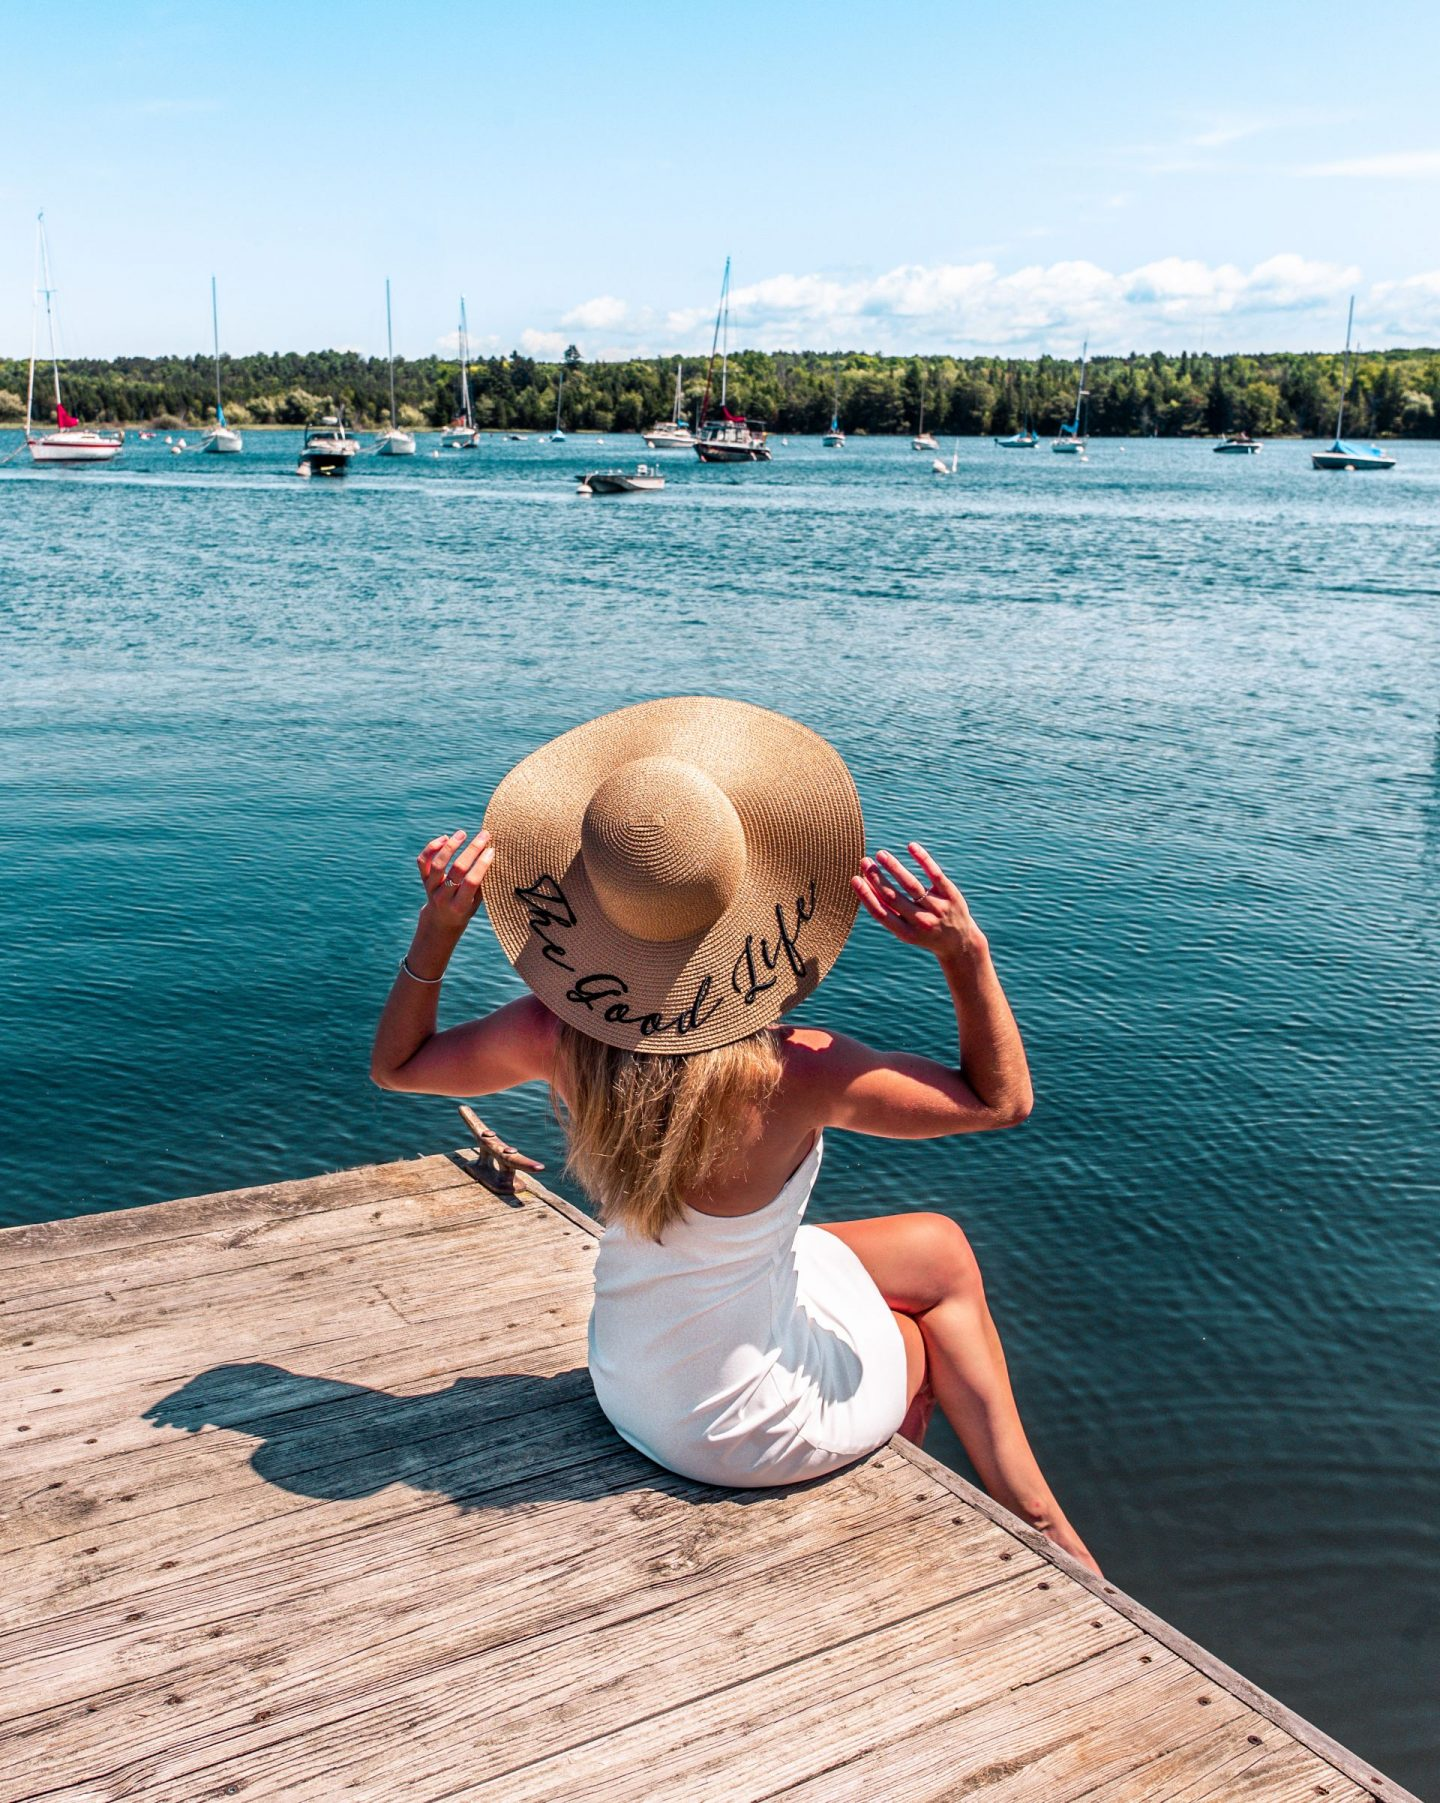 Things to do in Door County – 10 Ideas to Plan Your Next Trip